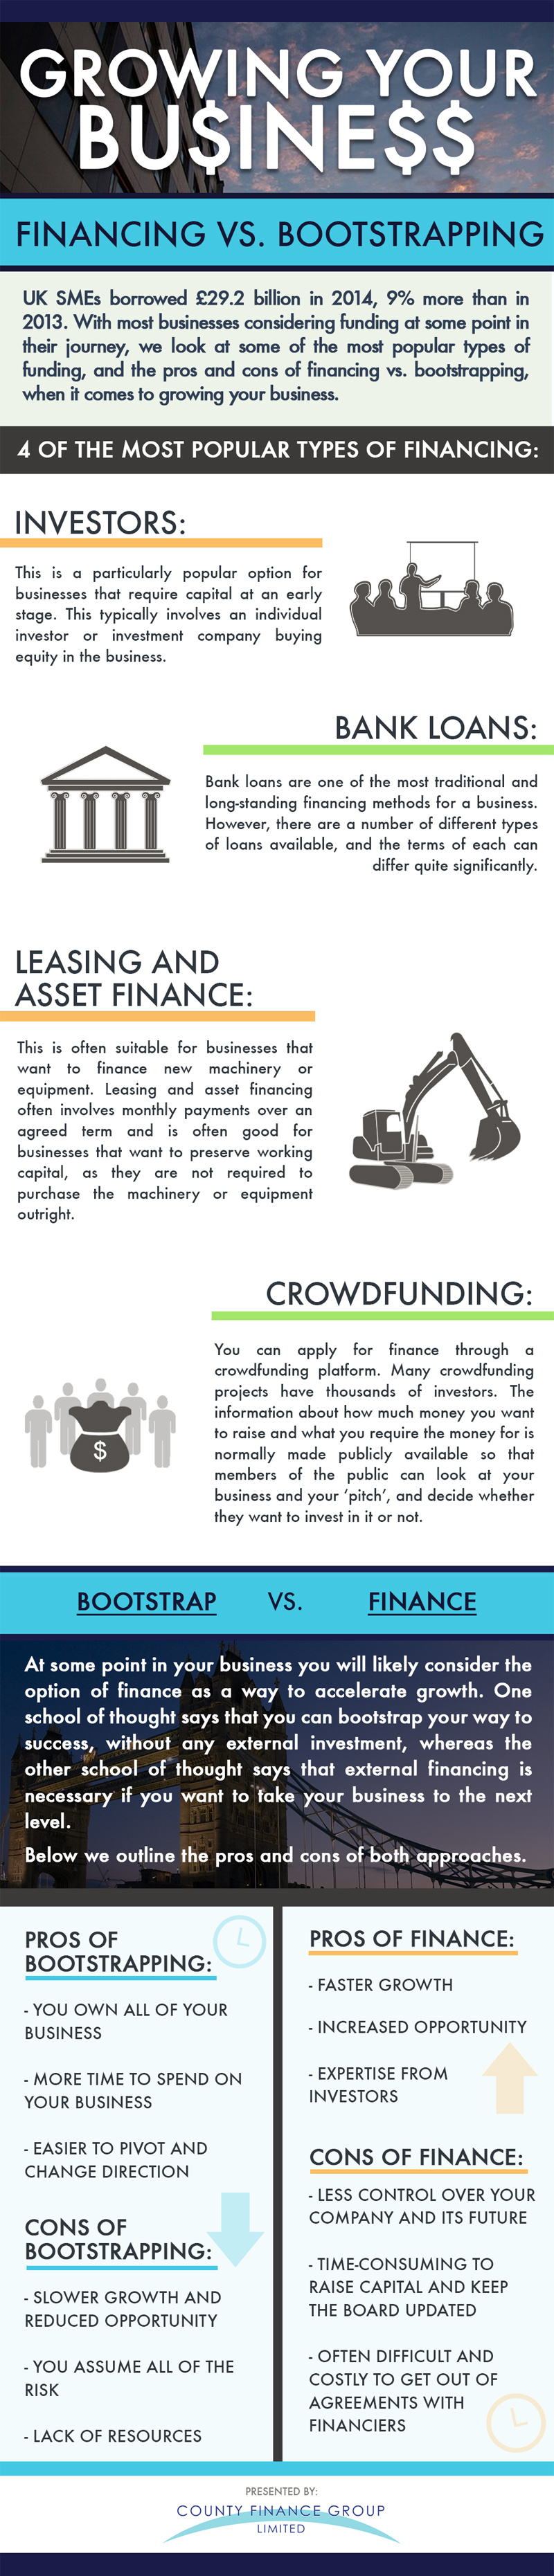 Growing Your Business: Financing Vs. Bootstrapping